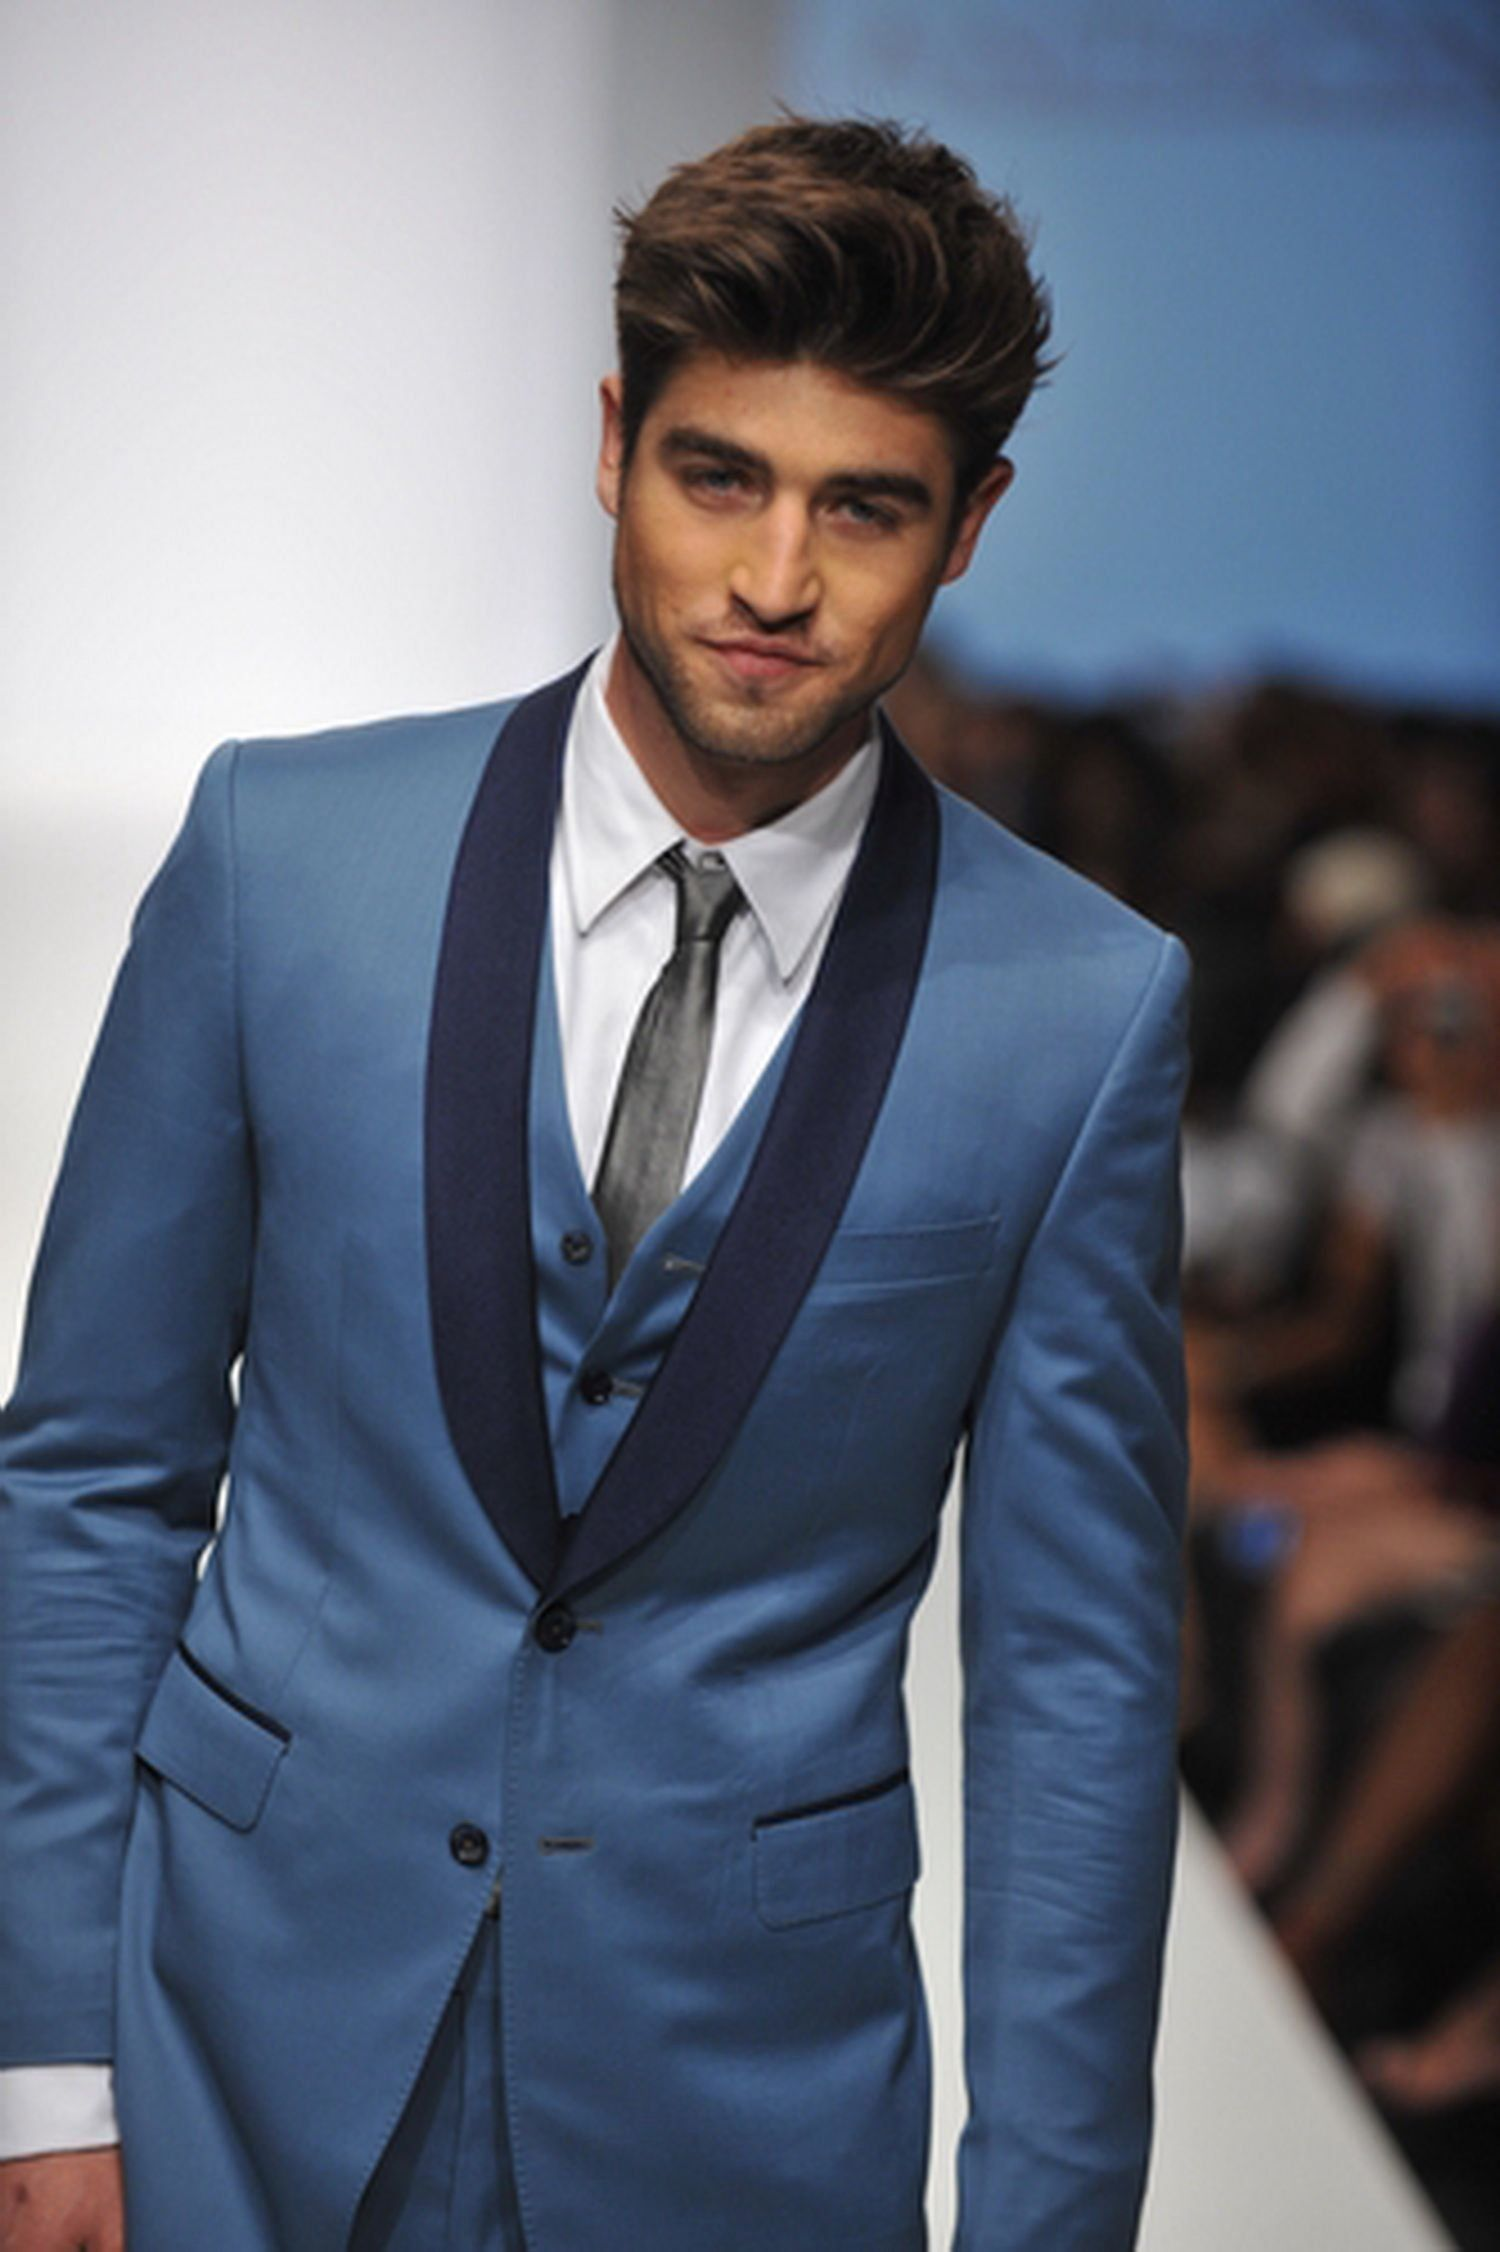 1000+ images about Prom Suits on Pinterest Prom suit